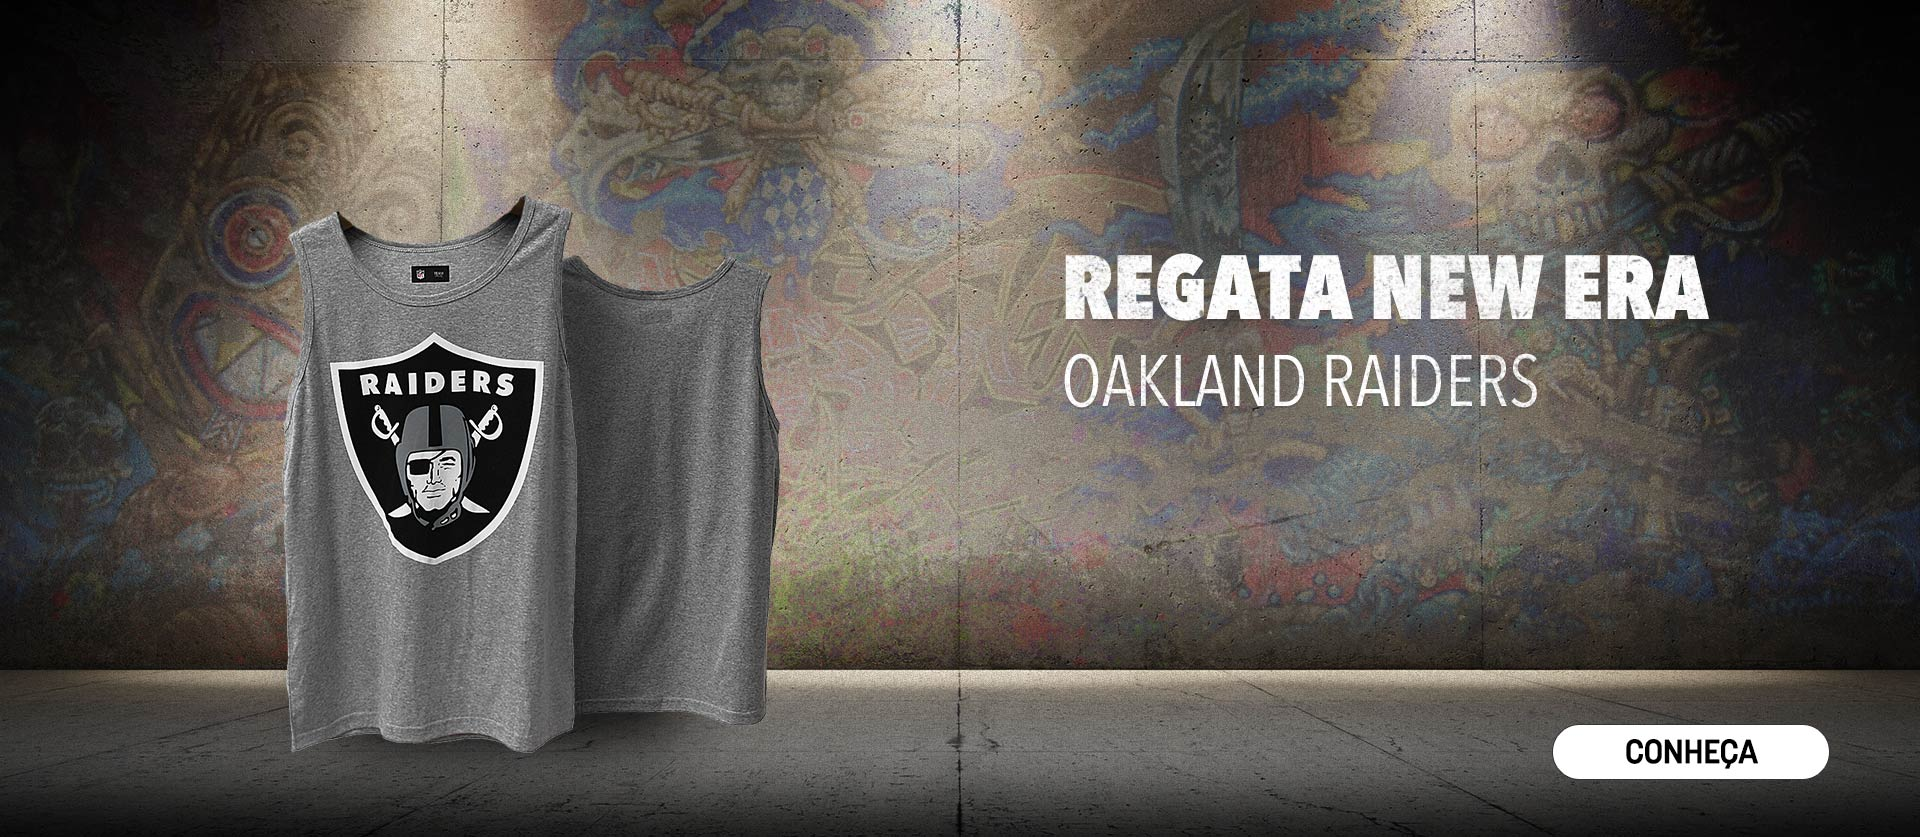 Regata New Era Oakland Raiders